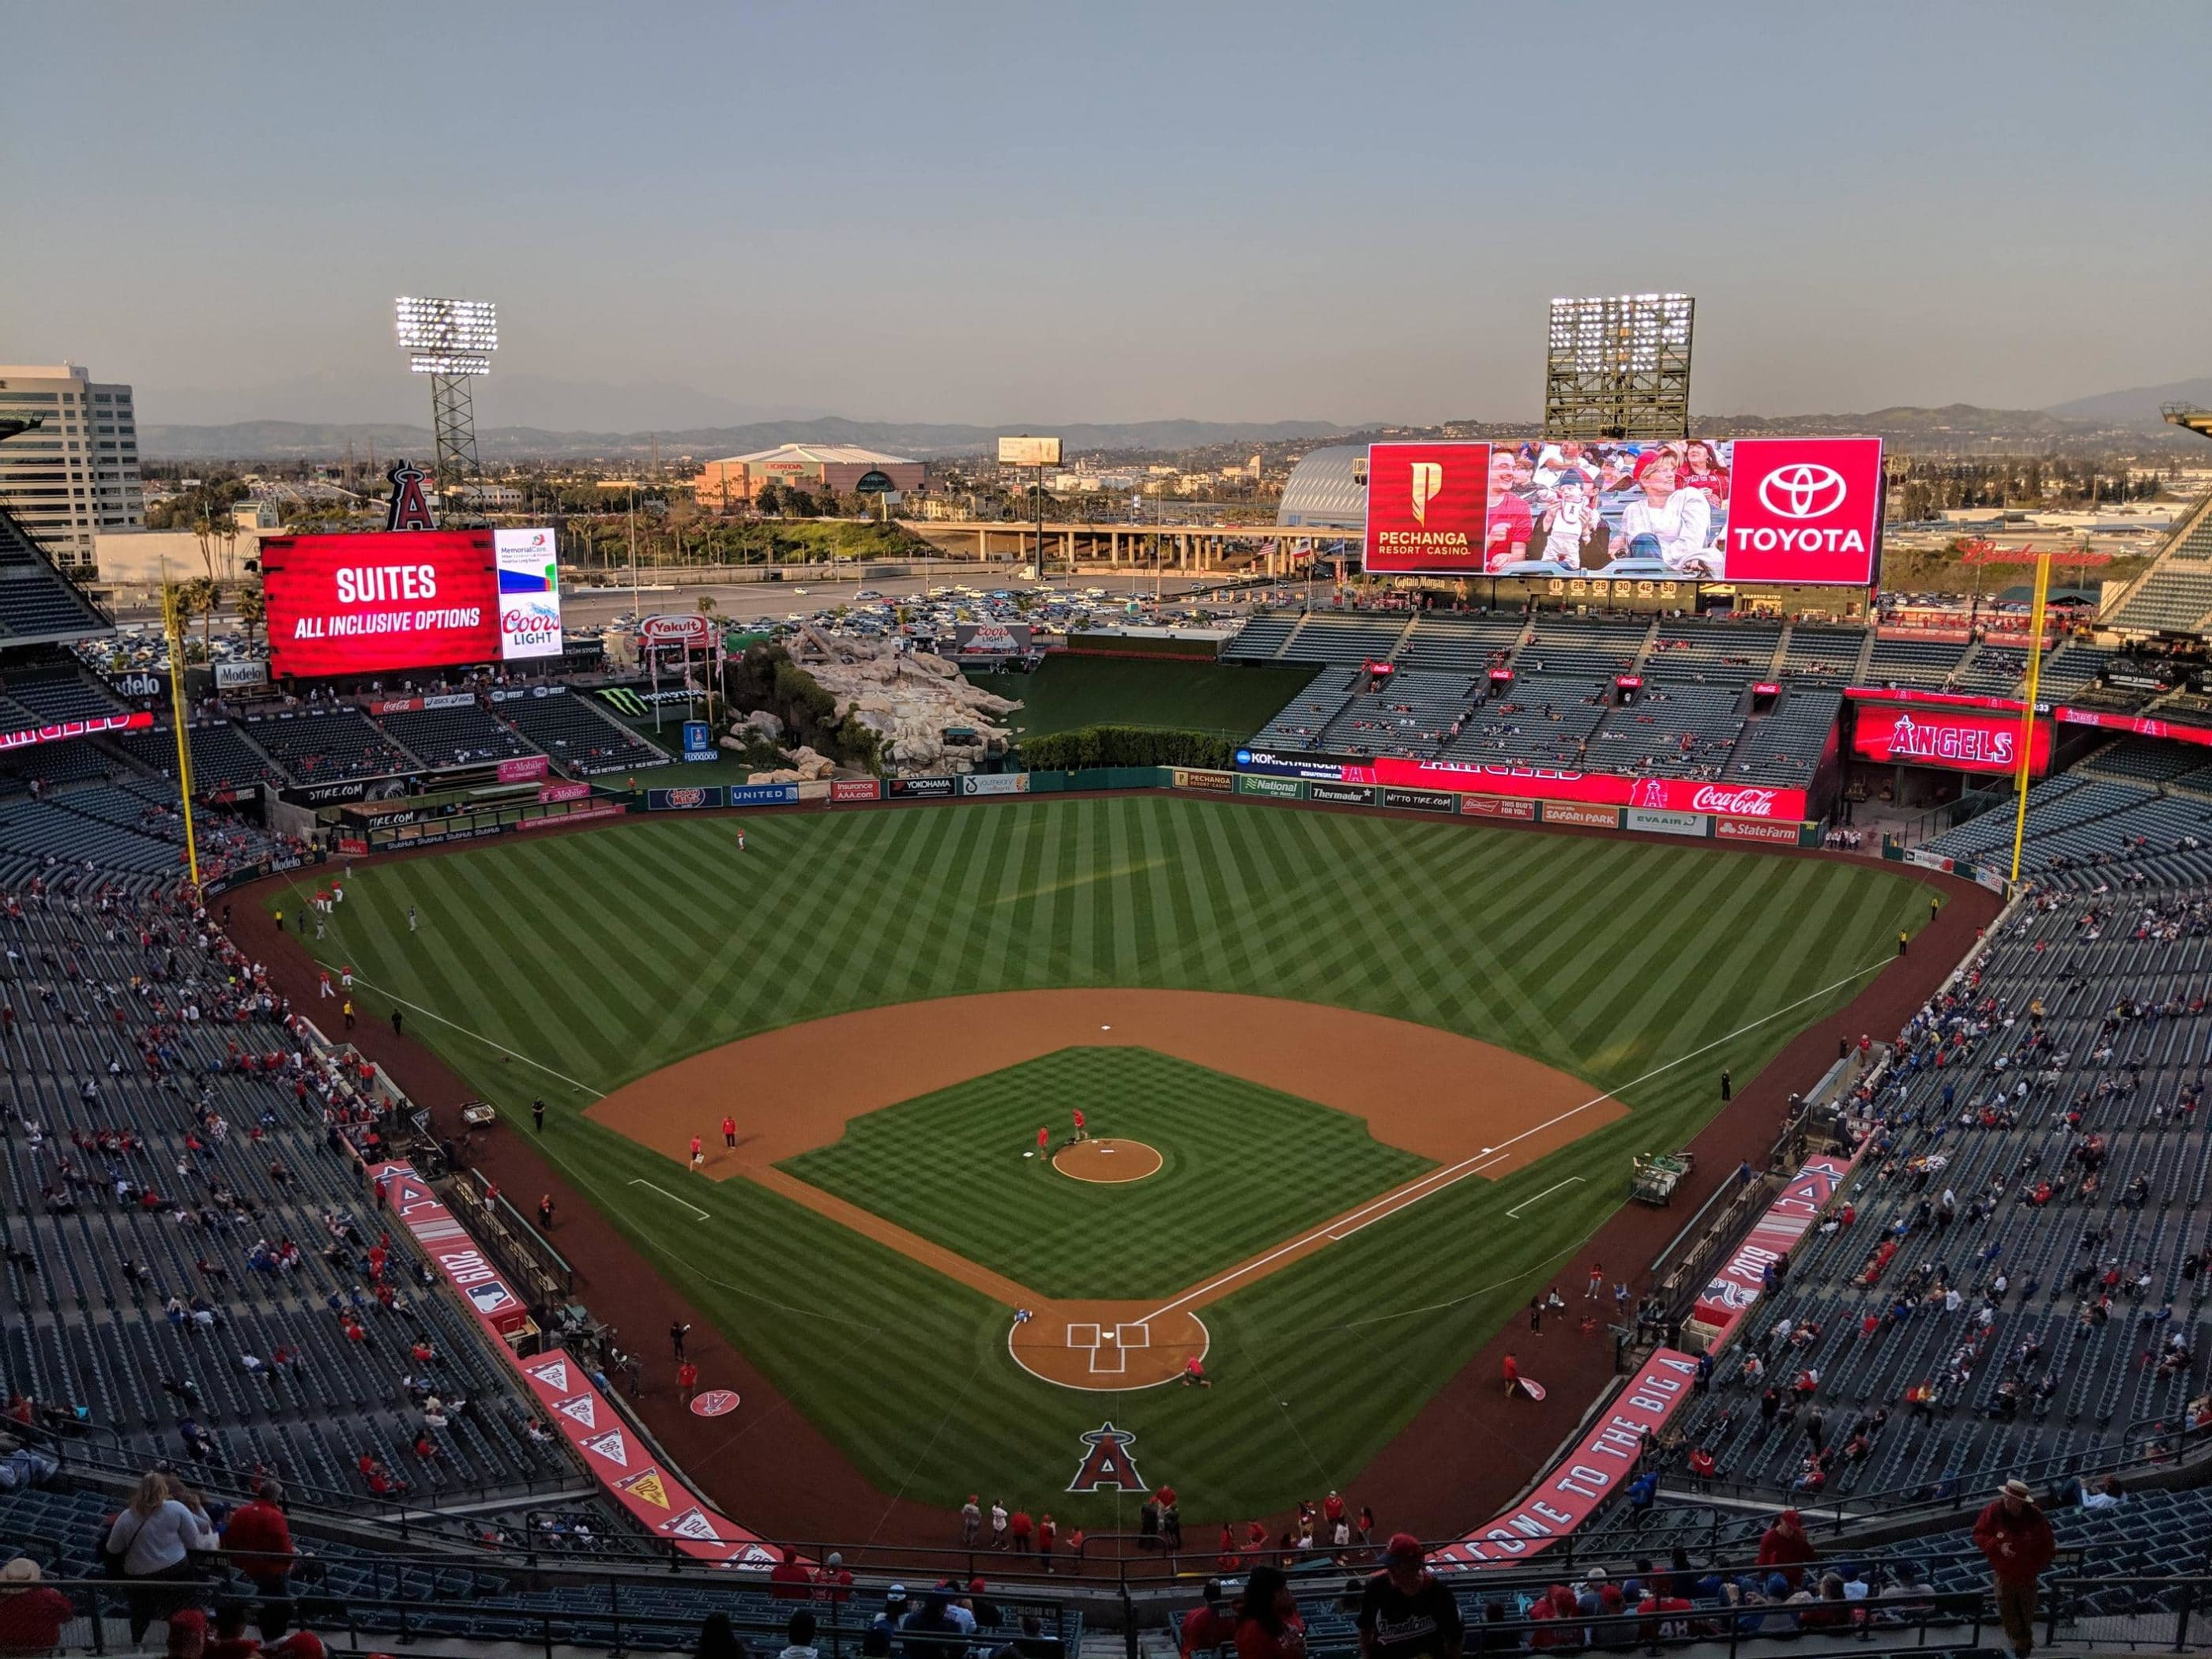 Aerial view of Angel Stadium at dusk during a baseball game.